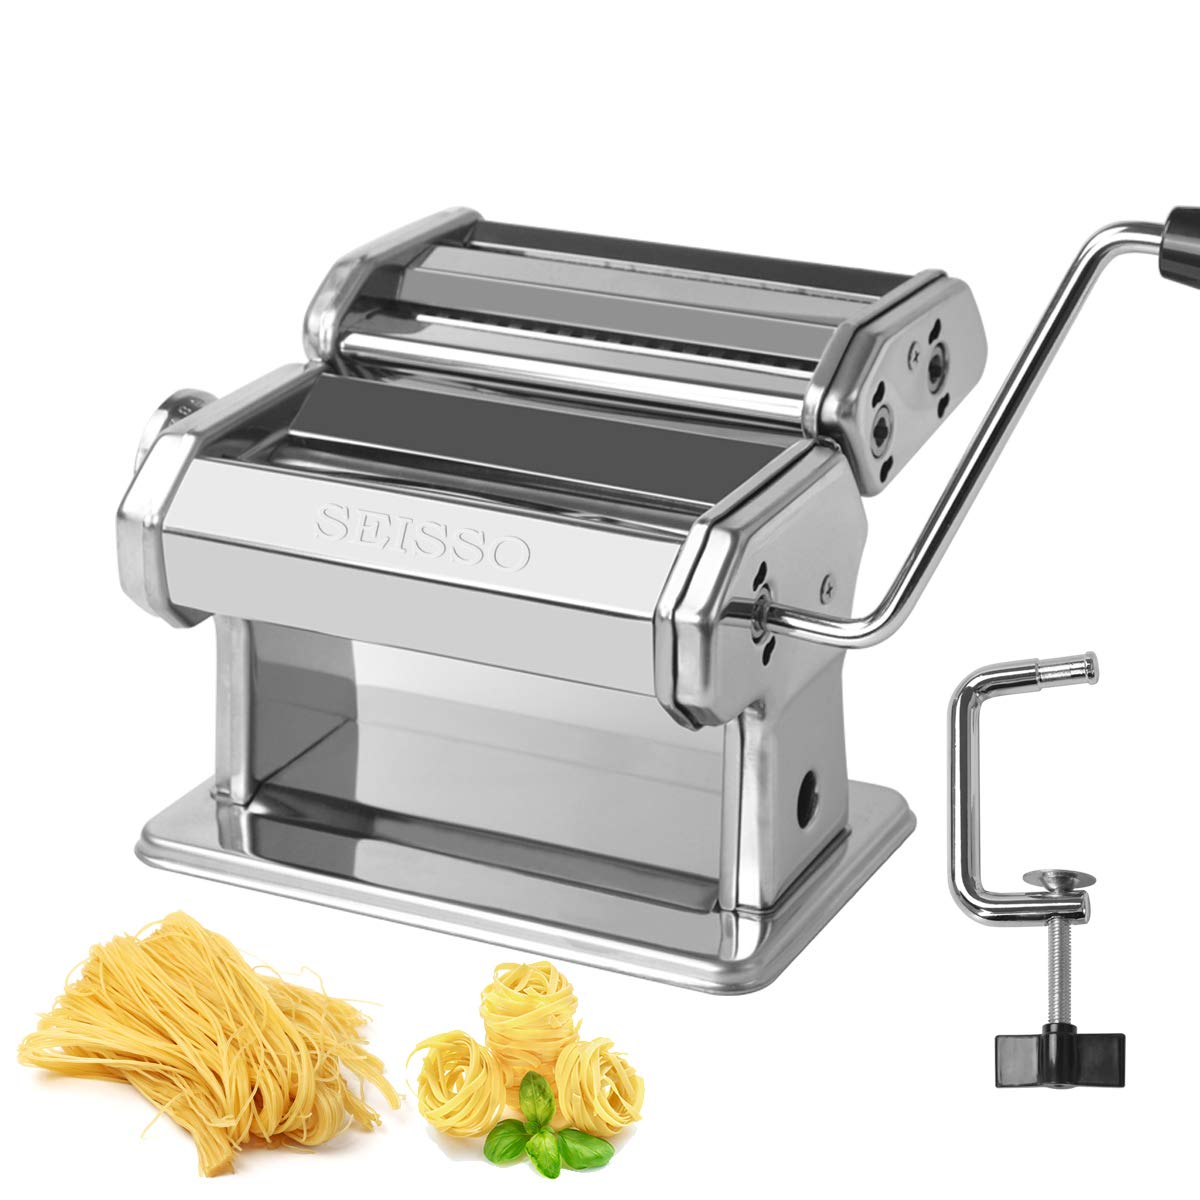 Pasta Maker Machine Hand Crank Stainless Steel Noodle Making Machine Vertical Roller Cutter Manual Pasta Machine, for Perfect Homemade and Restaurant by SEISSO